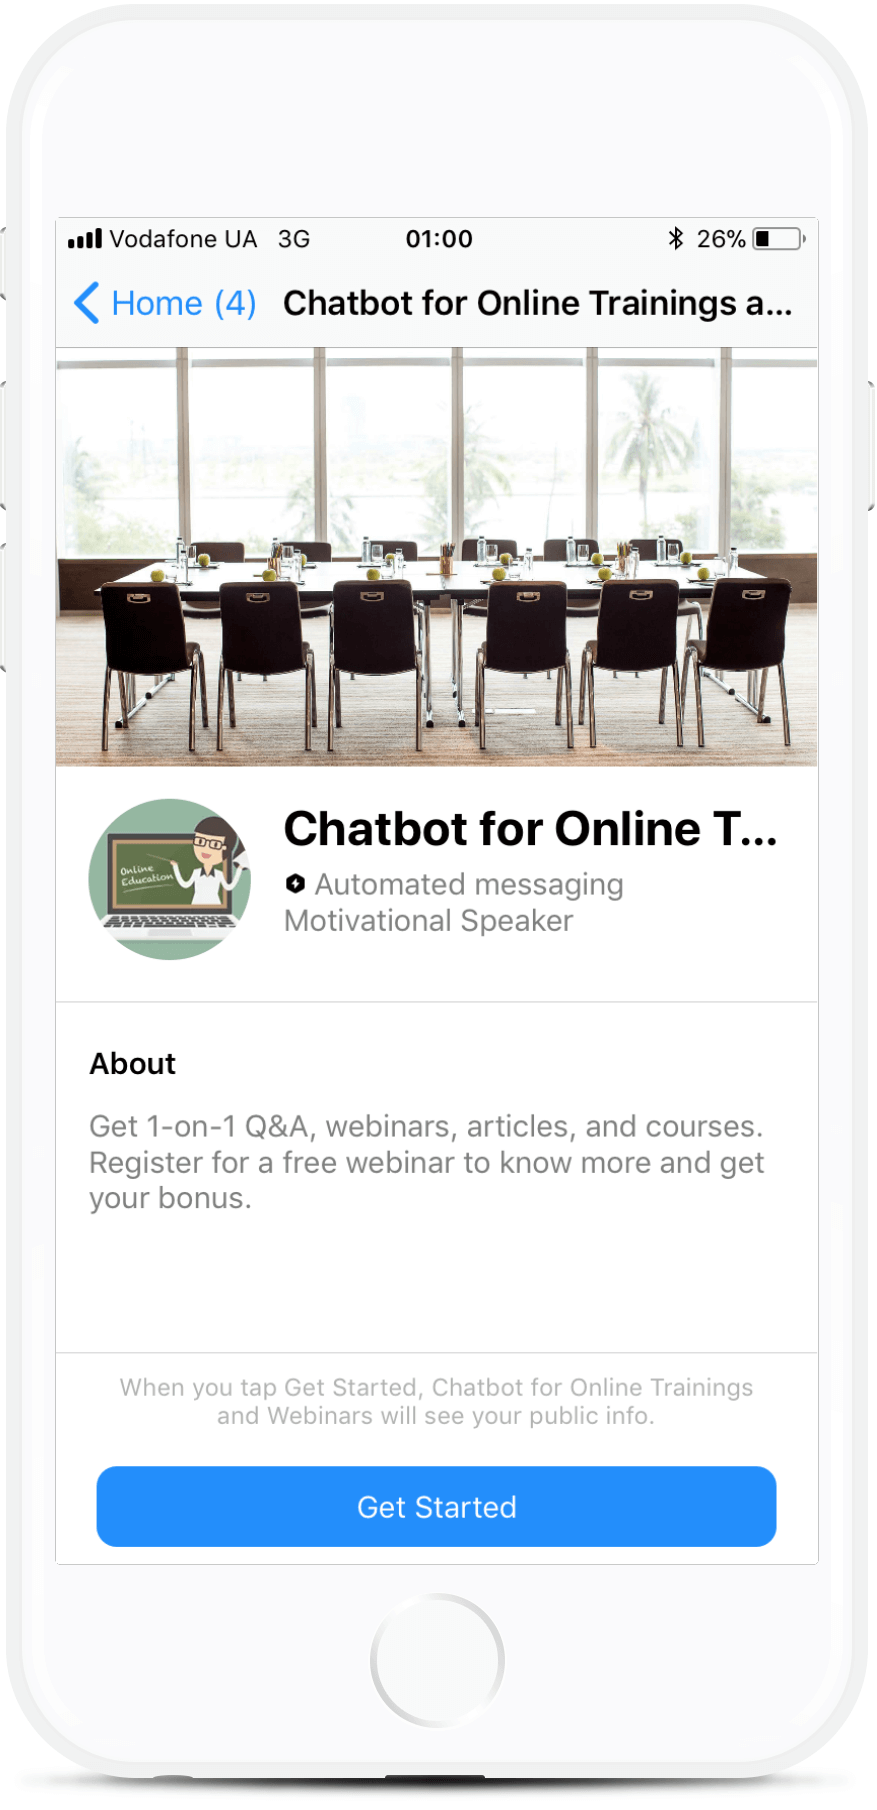 Chatbot for Online Trainings and Webinars Messenger bot screenshot